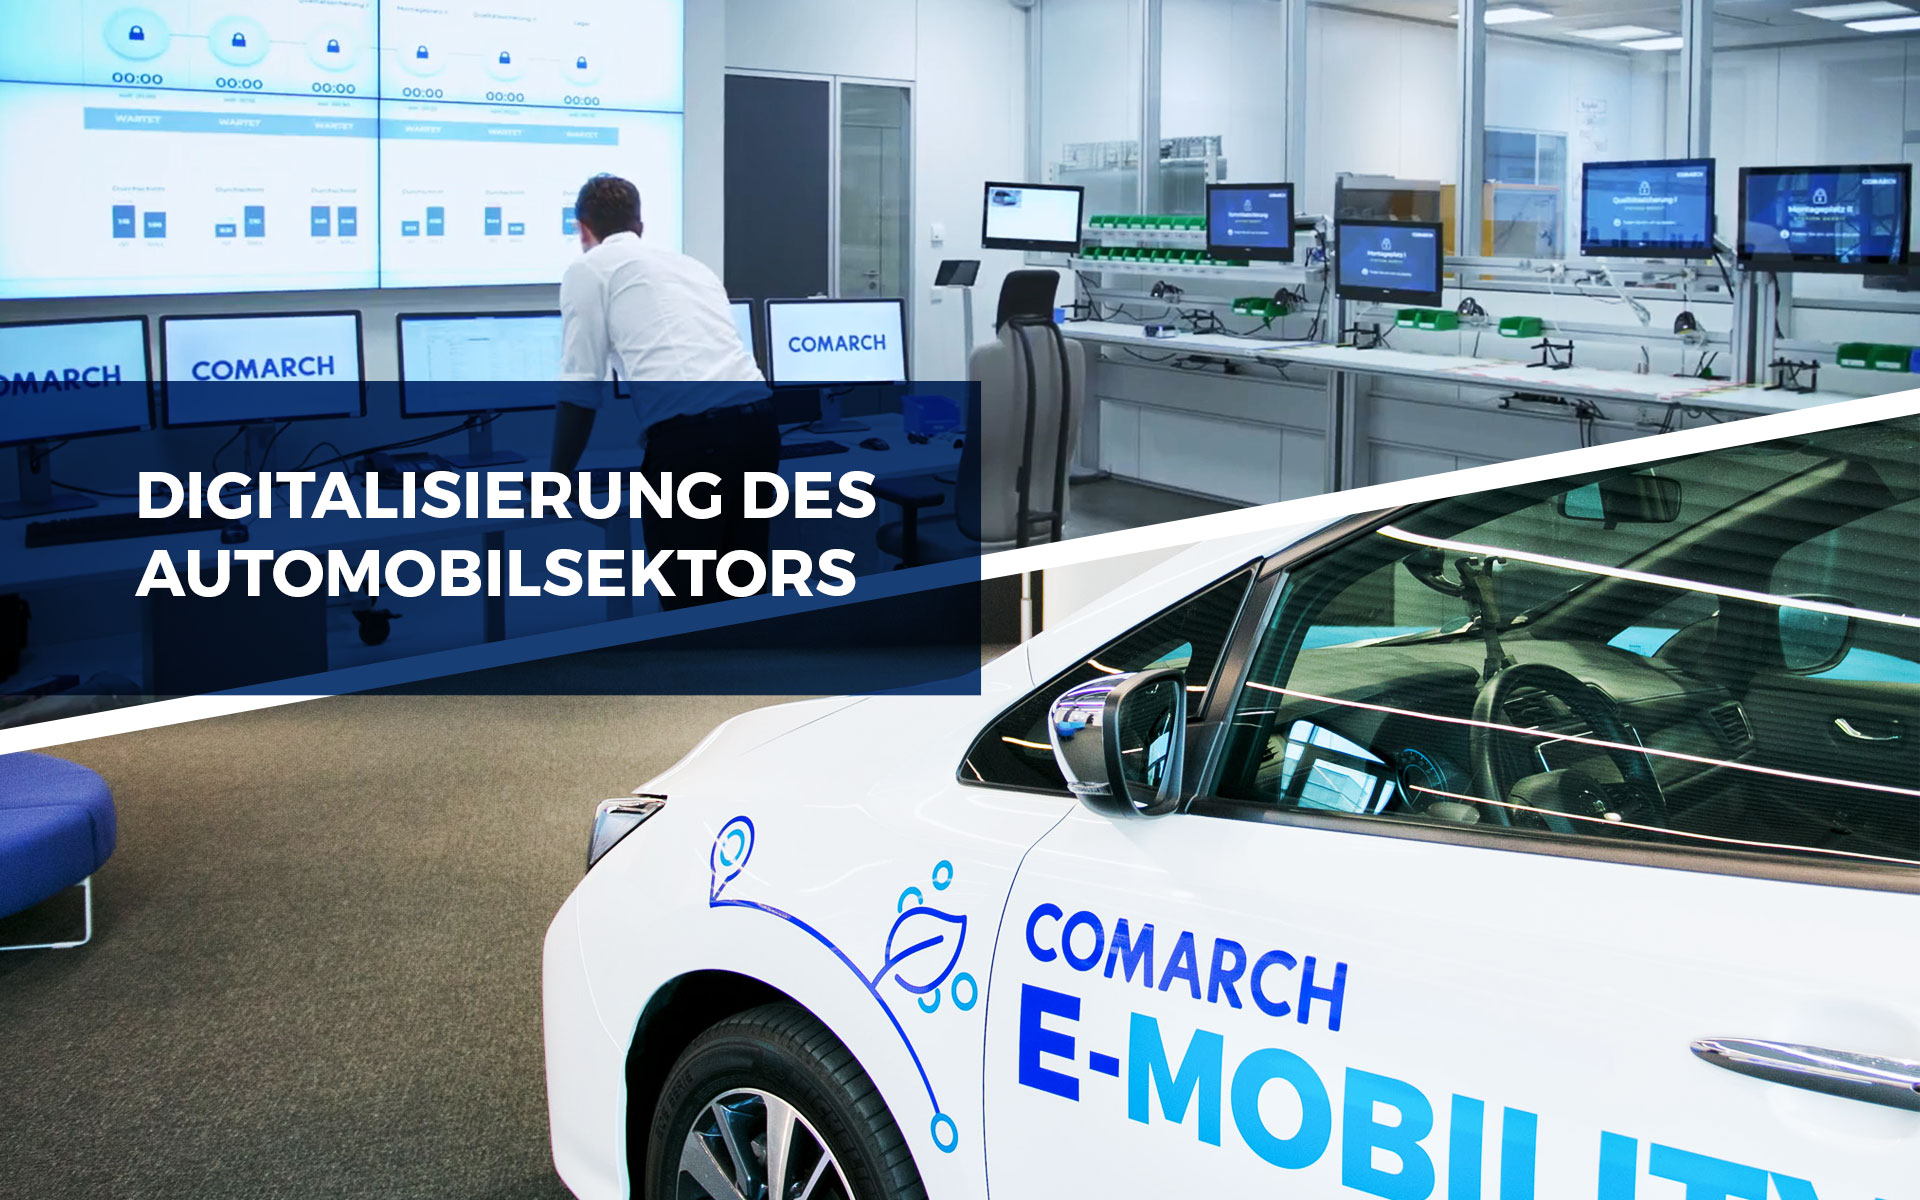 Comarch auf Automobil-Messe